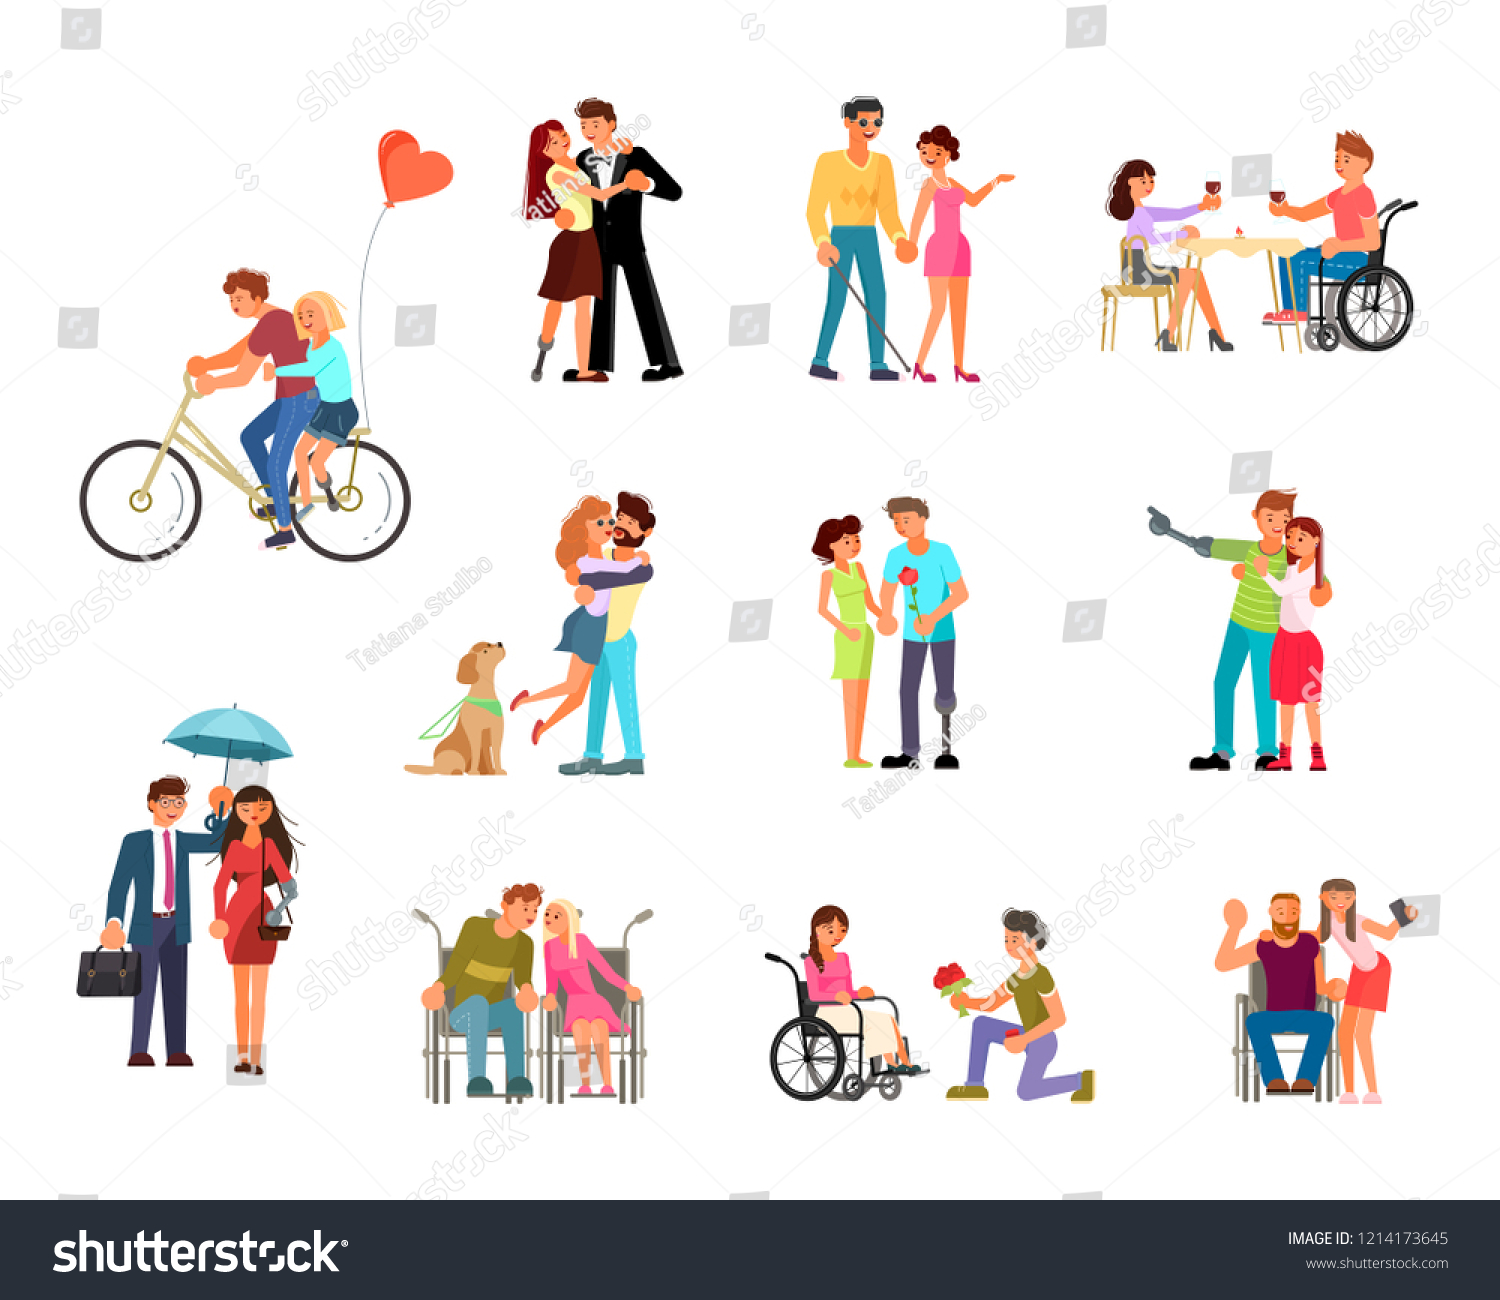 Bundle Different Types Romantic Relationships Marriage Stock Vector Royalty Free 1214173645